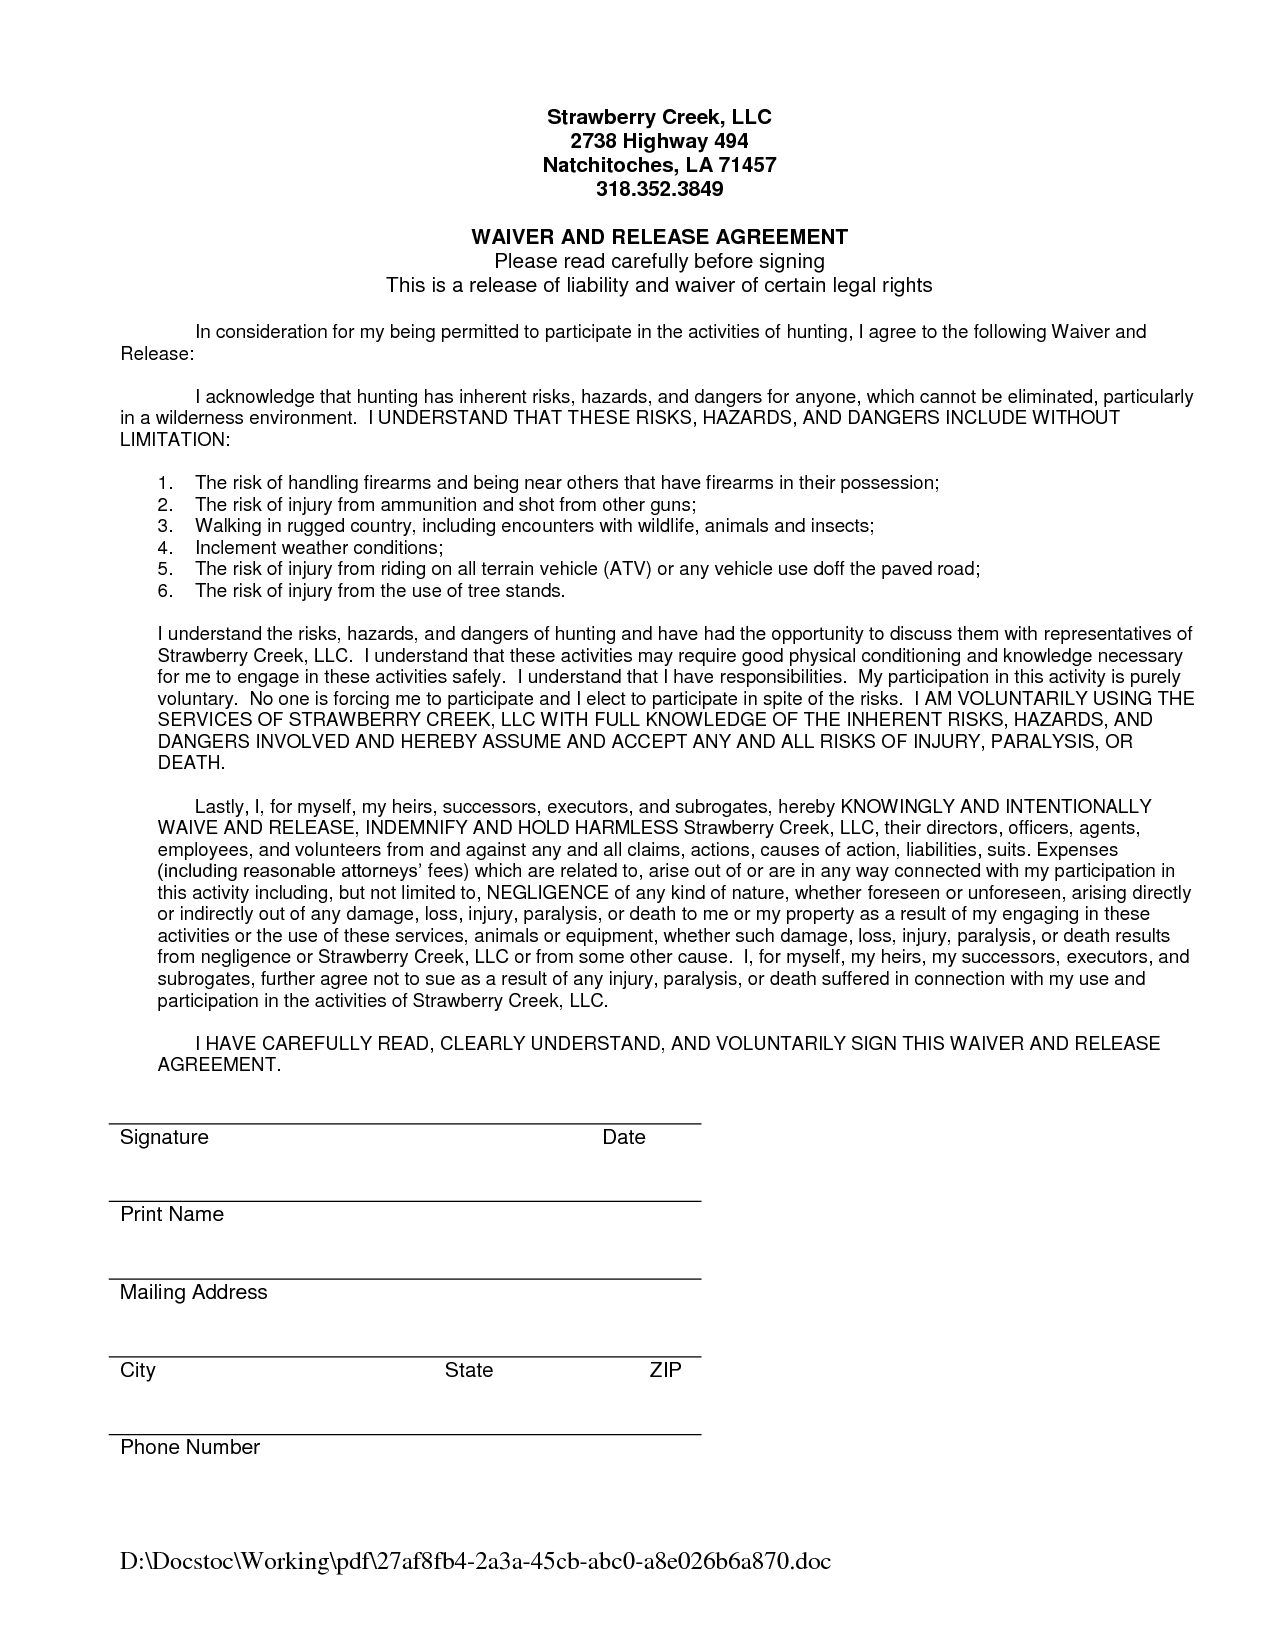 liability waiver form sample